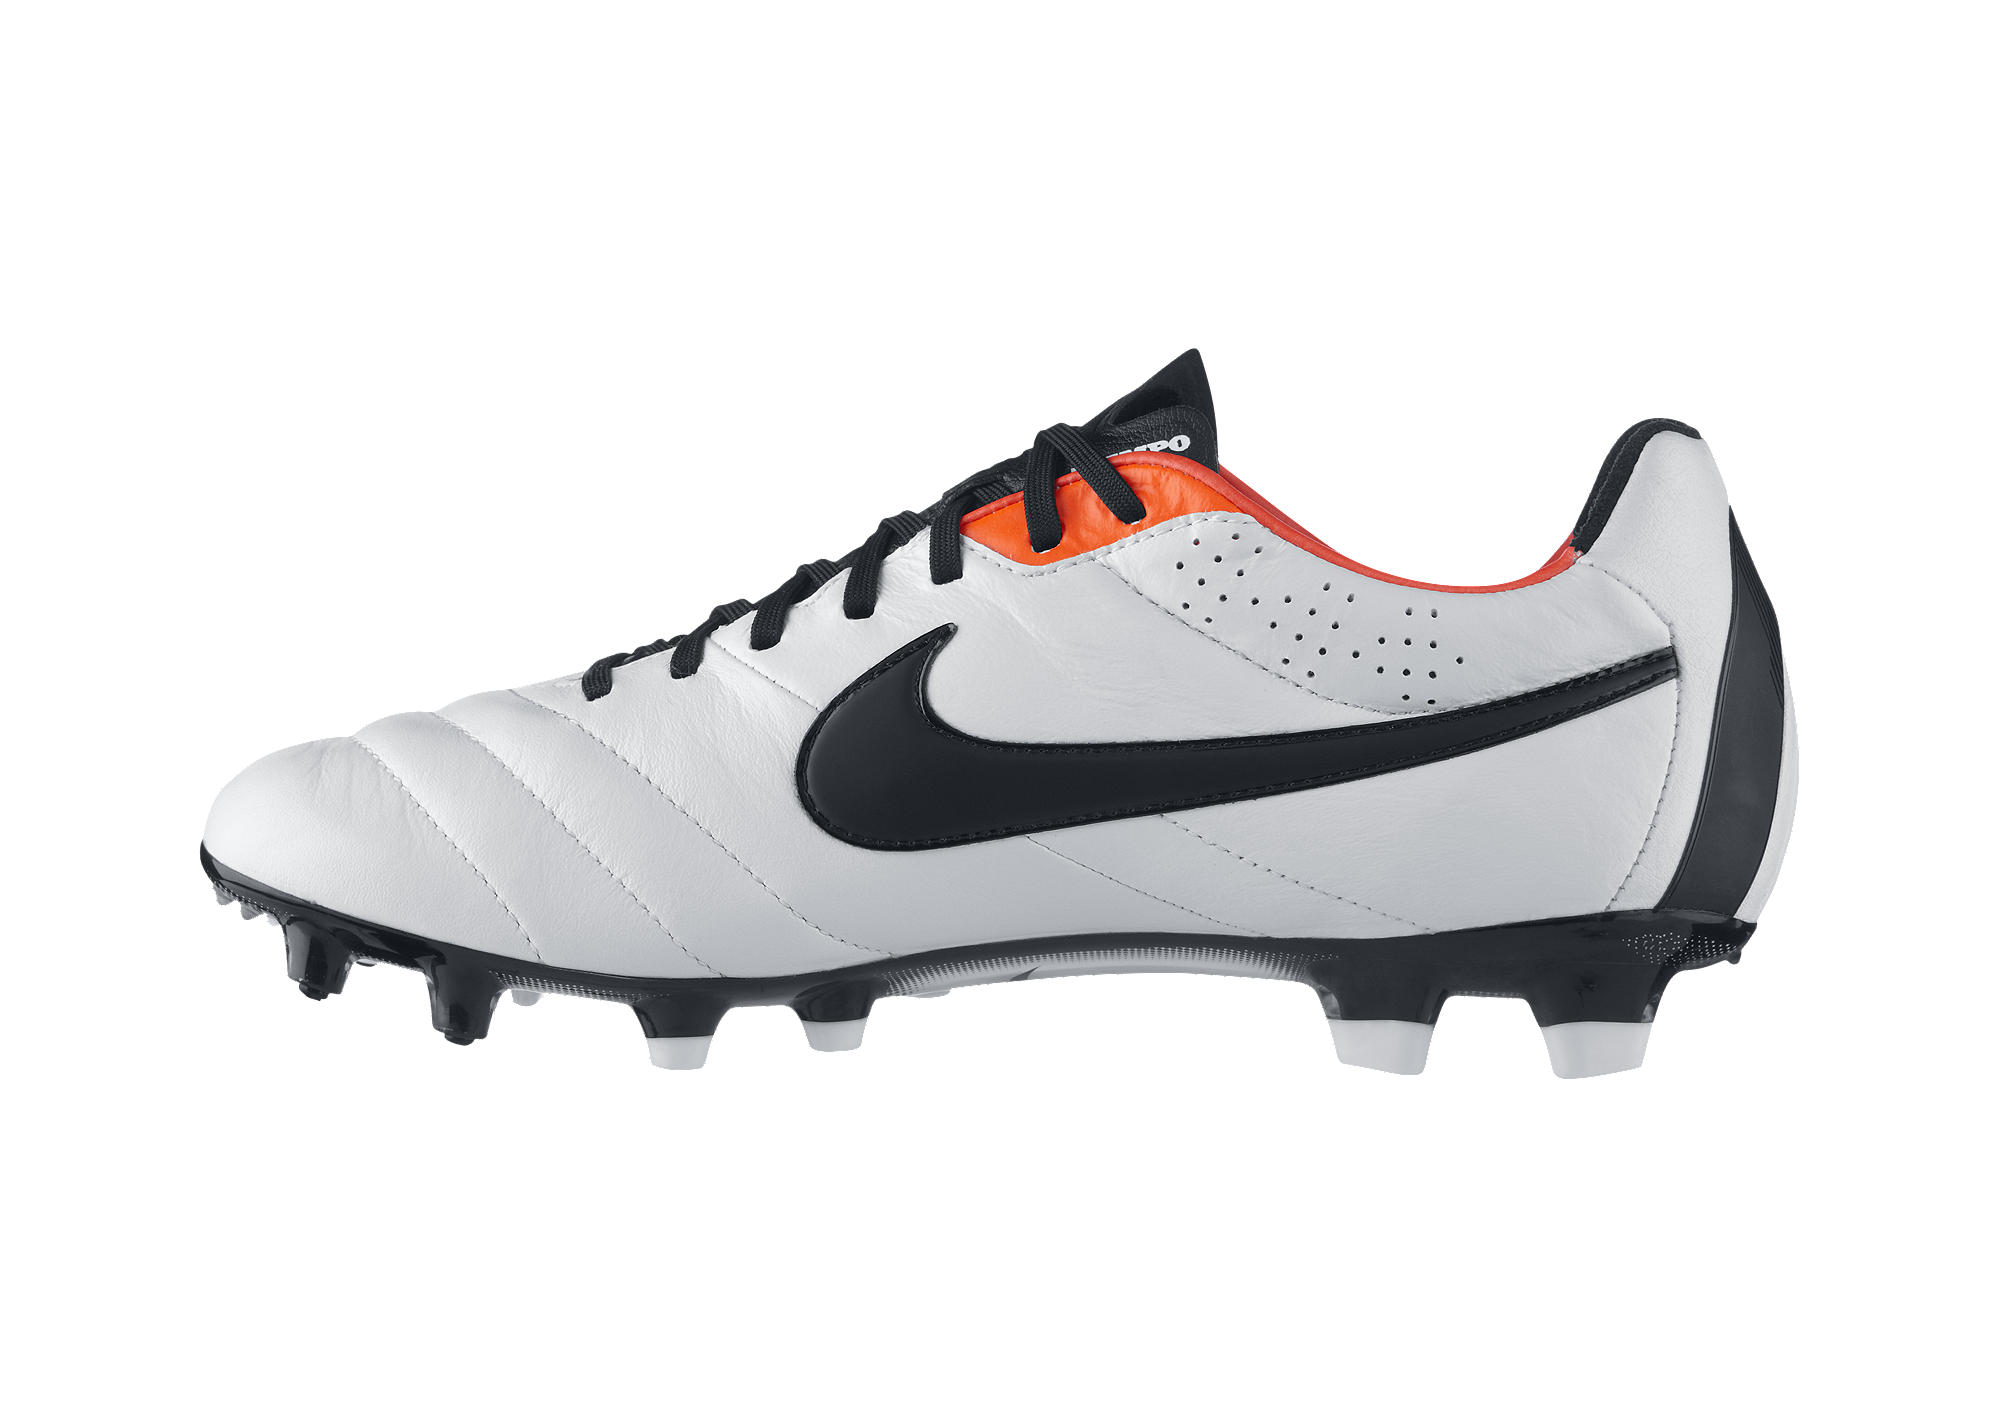 Free Soccer Cleats Cliparts Download Free Clip Art Free